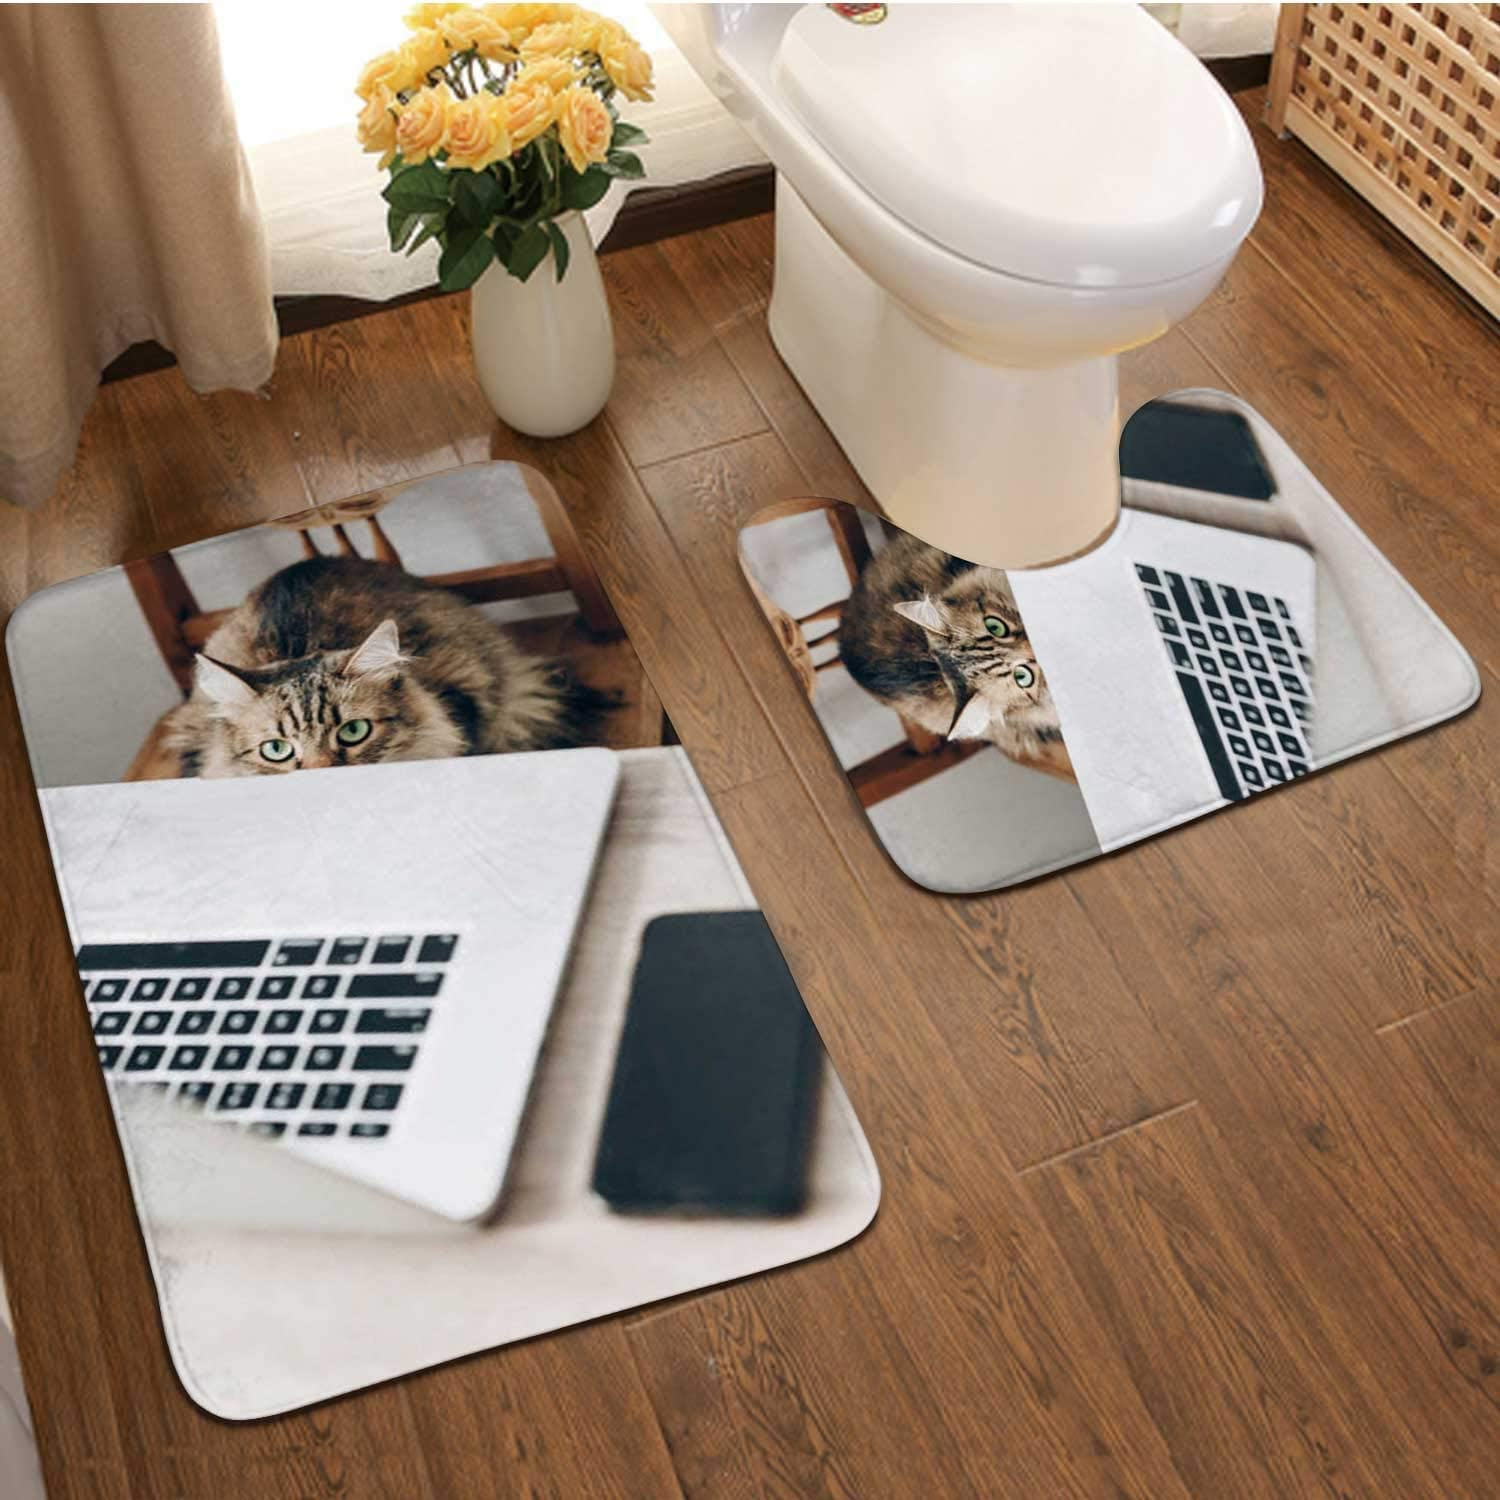 Cute cat Sitting on Wooden Chair at Table with Laptop.Working Home and Freelance Concept.Maine Coon in stlish Office or workp .Funn bussines Work Situation Animal Ee,Bathroom Rugs Luxur Bath Mat,S